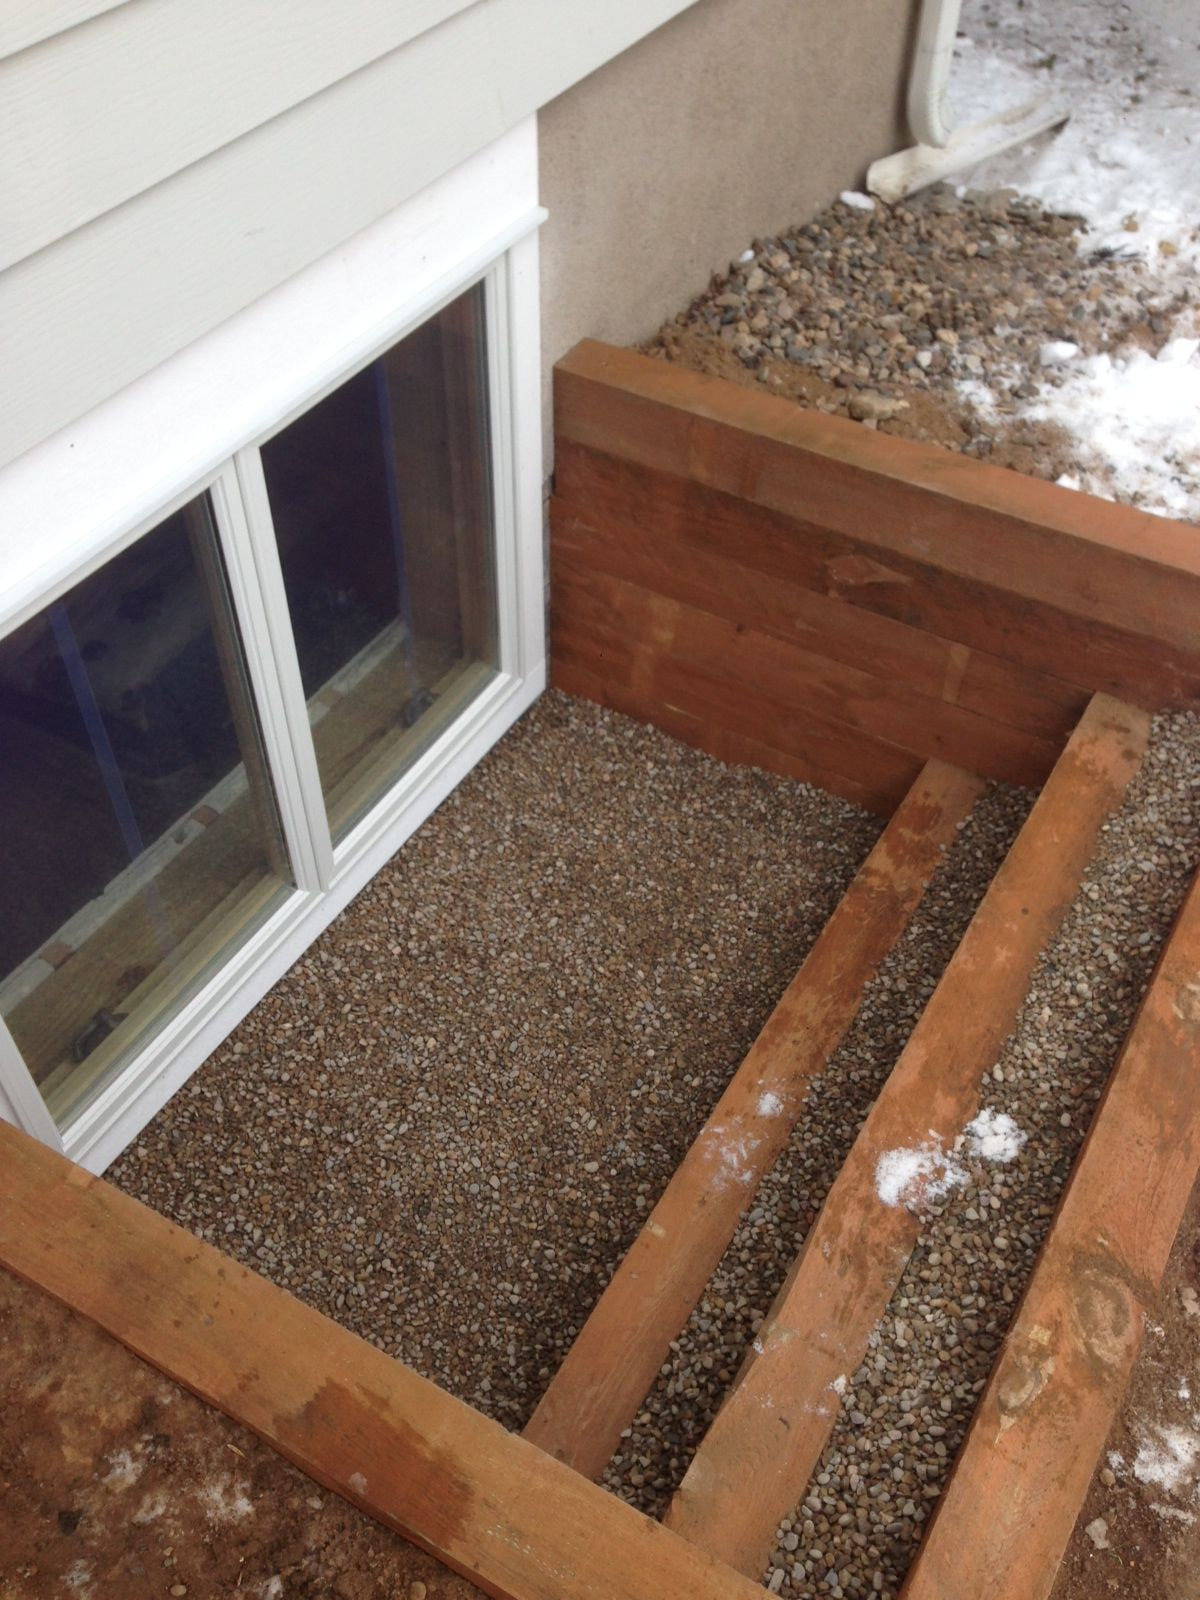 Egress Window Timber Well Egress Window Egress Window Well Window Well